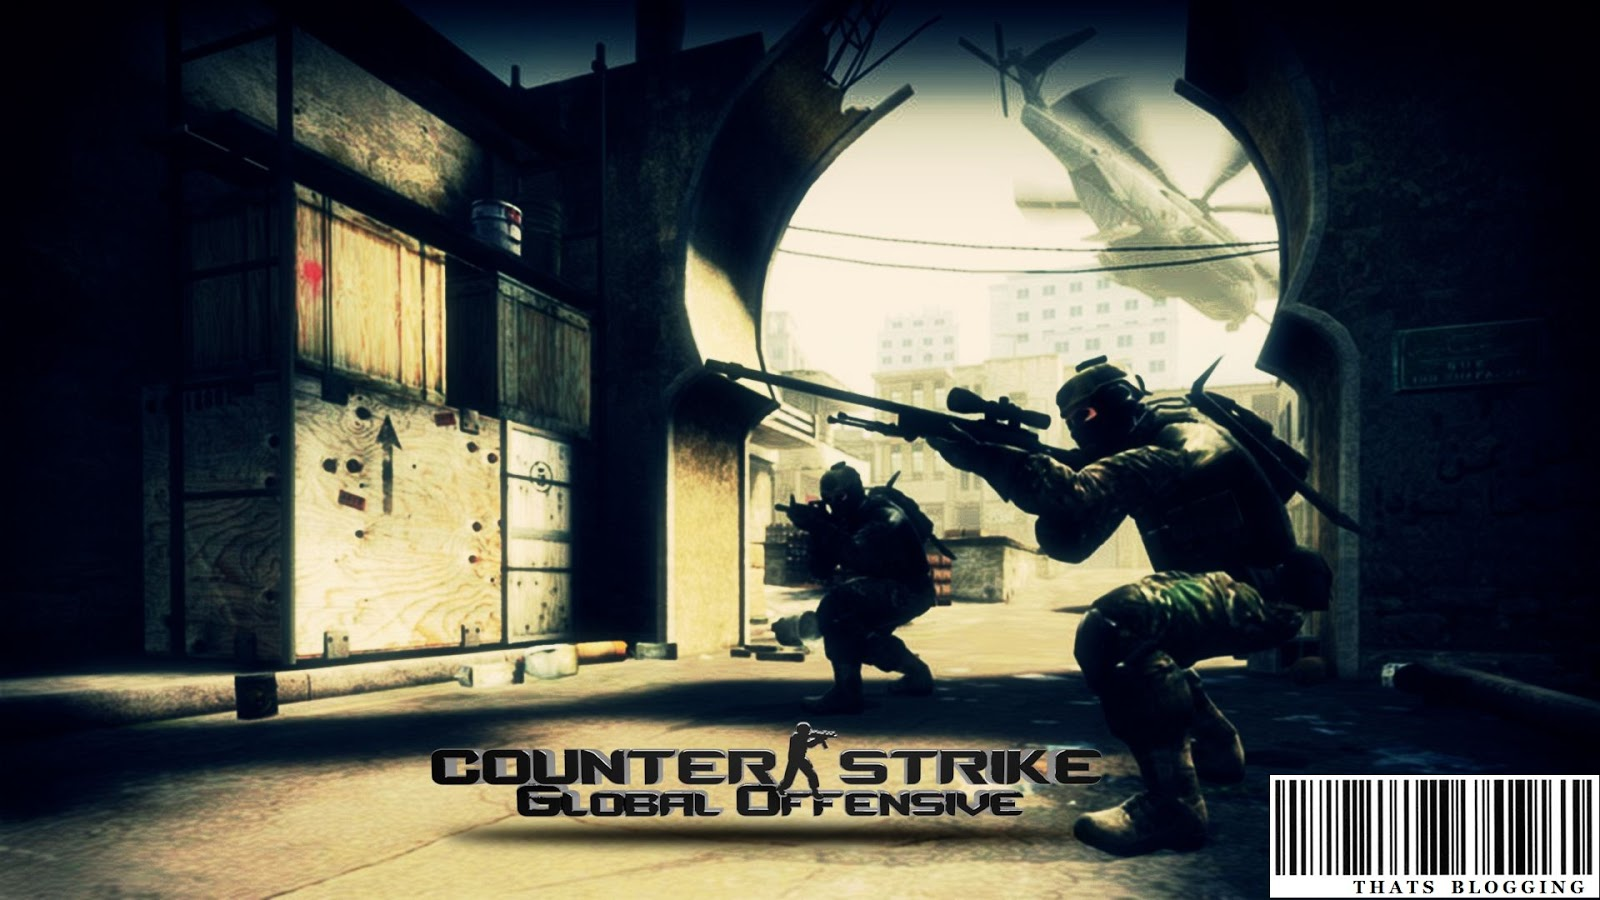 Counter Strike Wallpaper HDjpg 1600x900